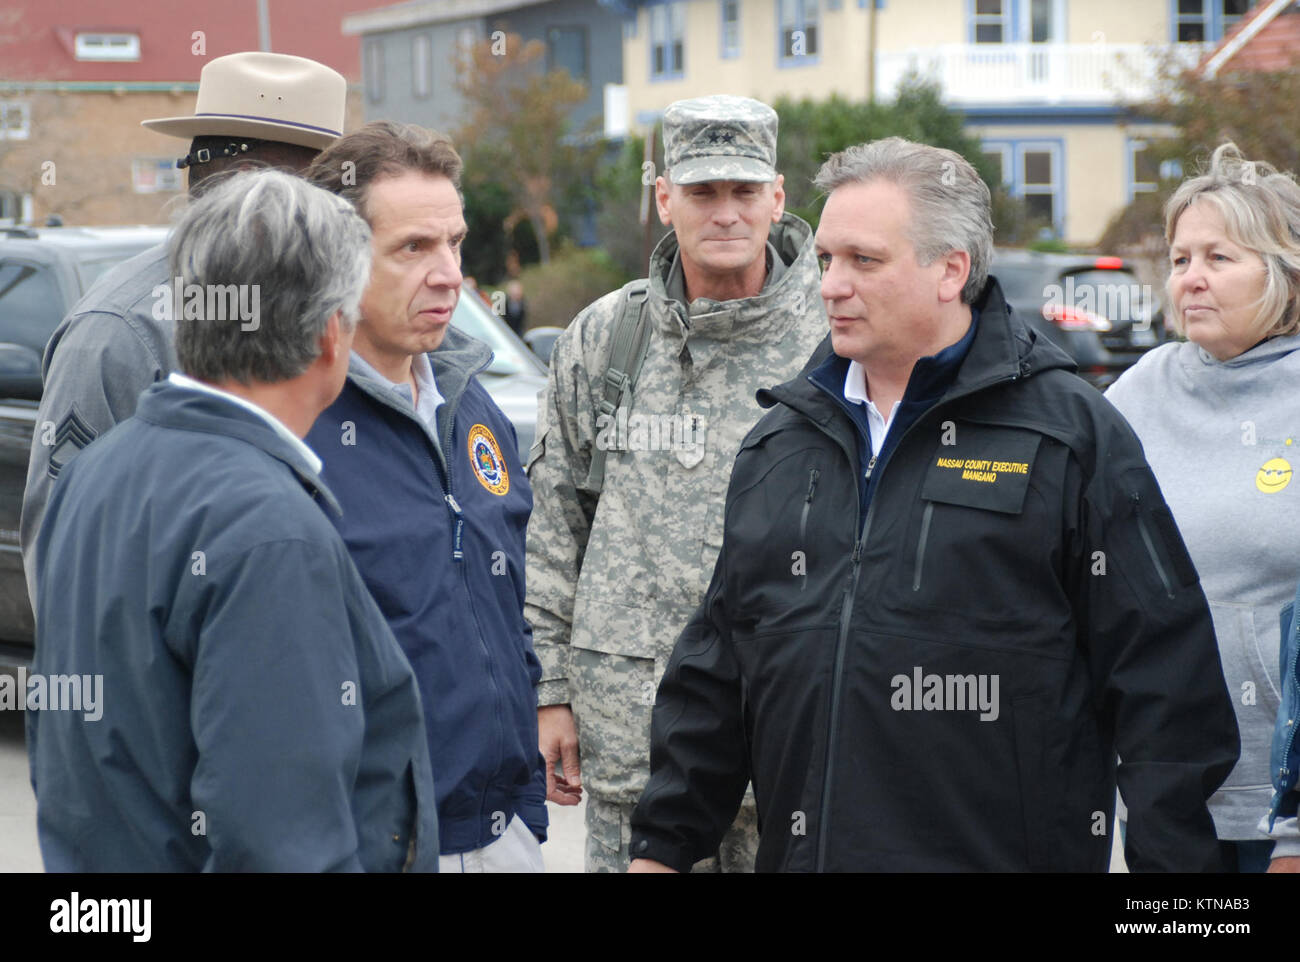 LONG BEACH, N.Y. – New York Governor Andrew Cuomo meets with Nassau County Executive Edward Mangano and the Adjutant - Stock Image